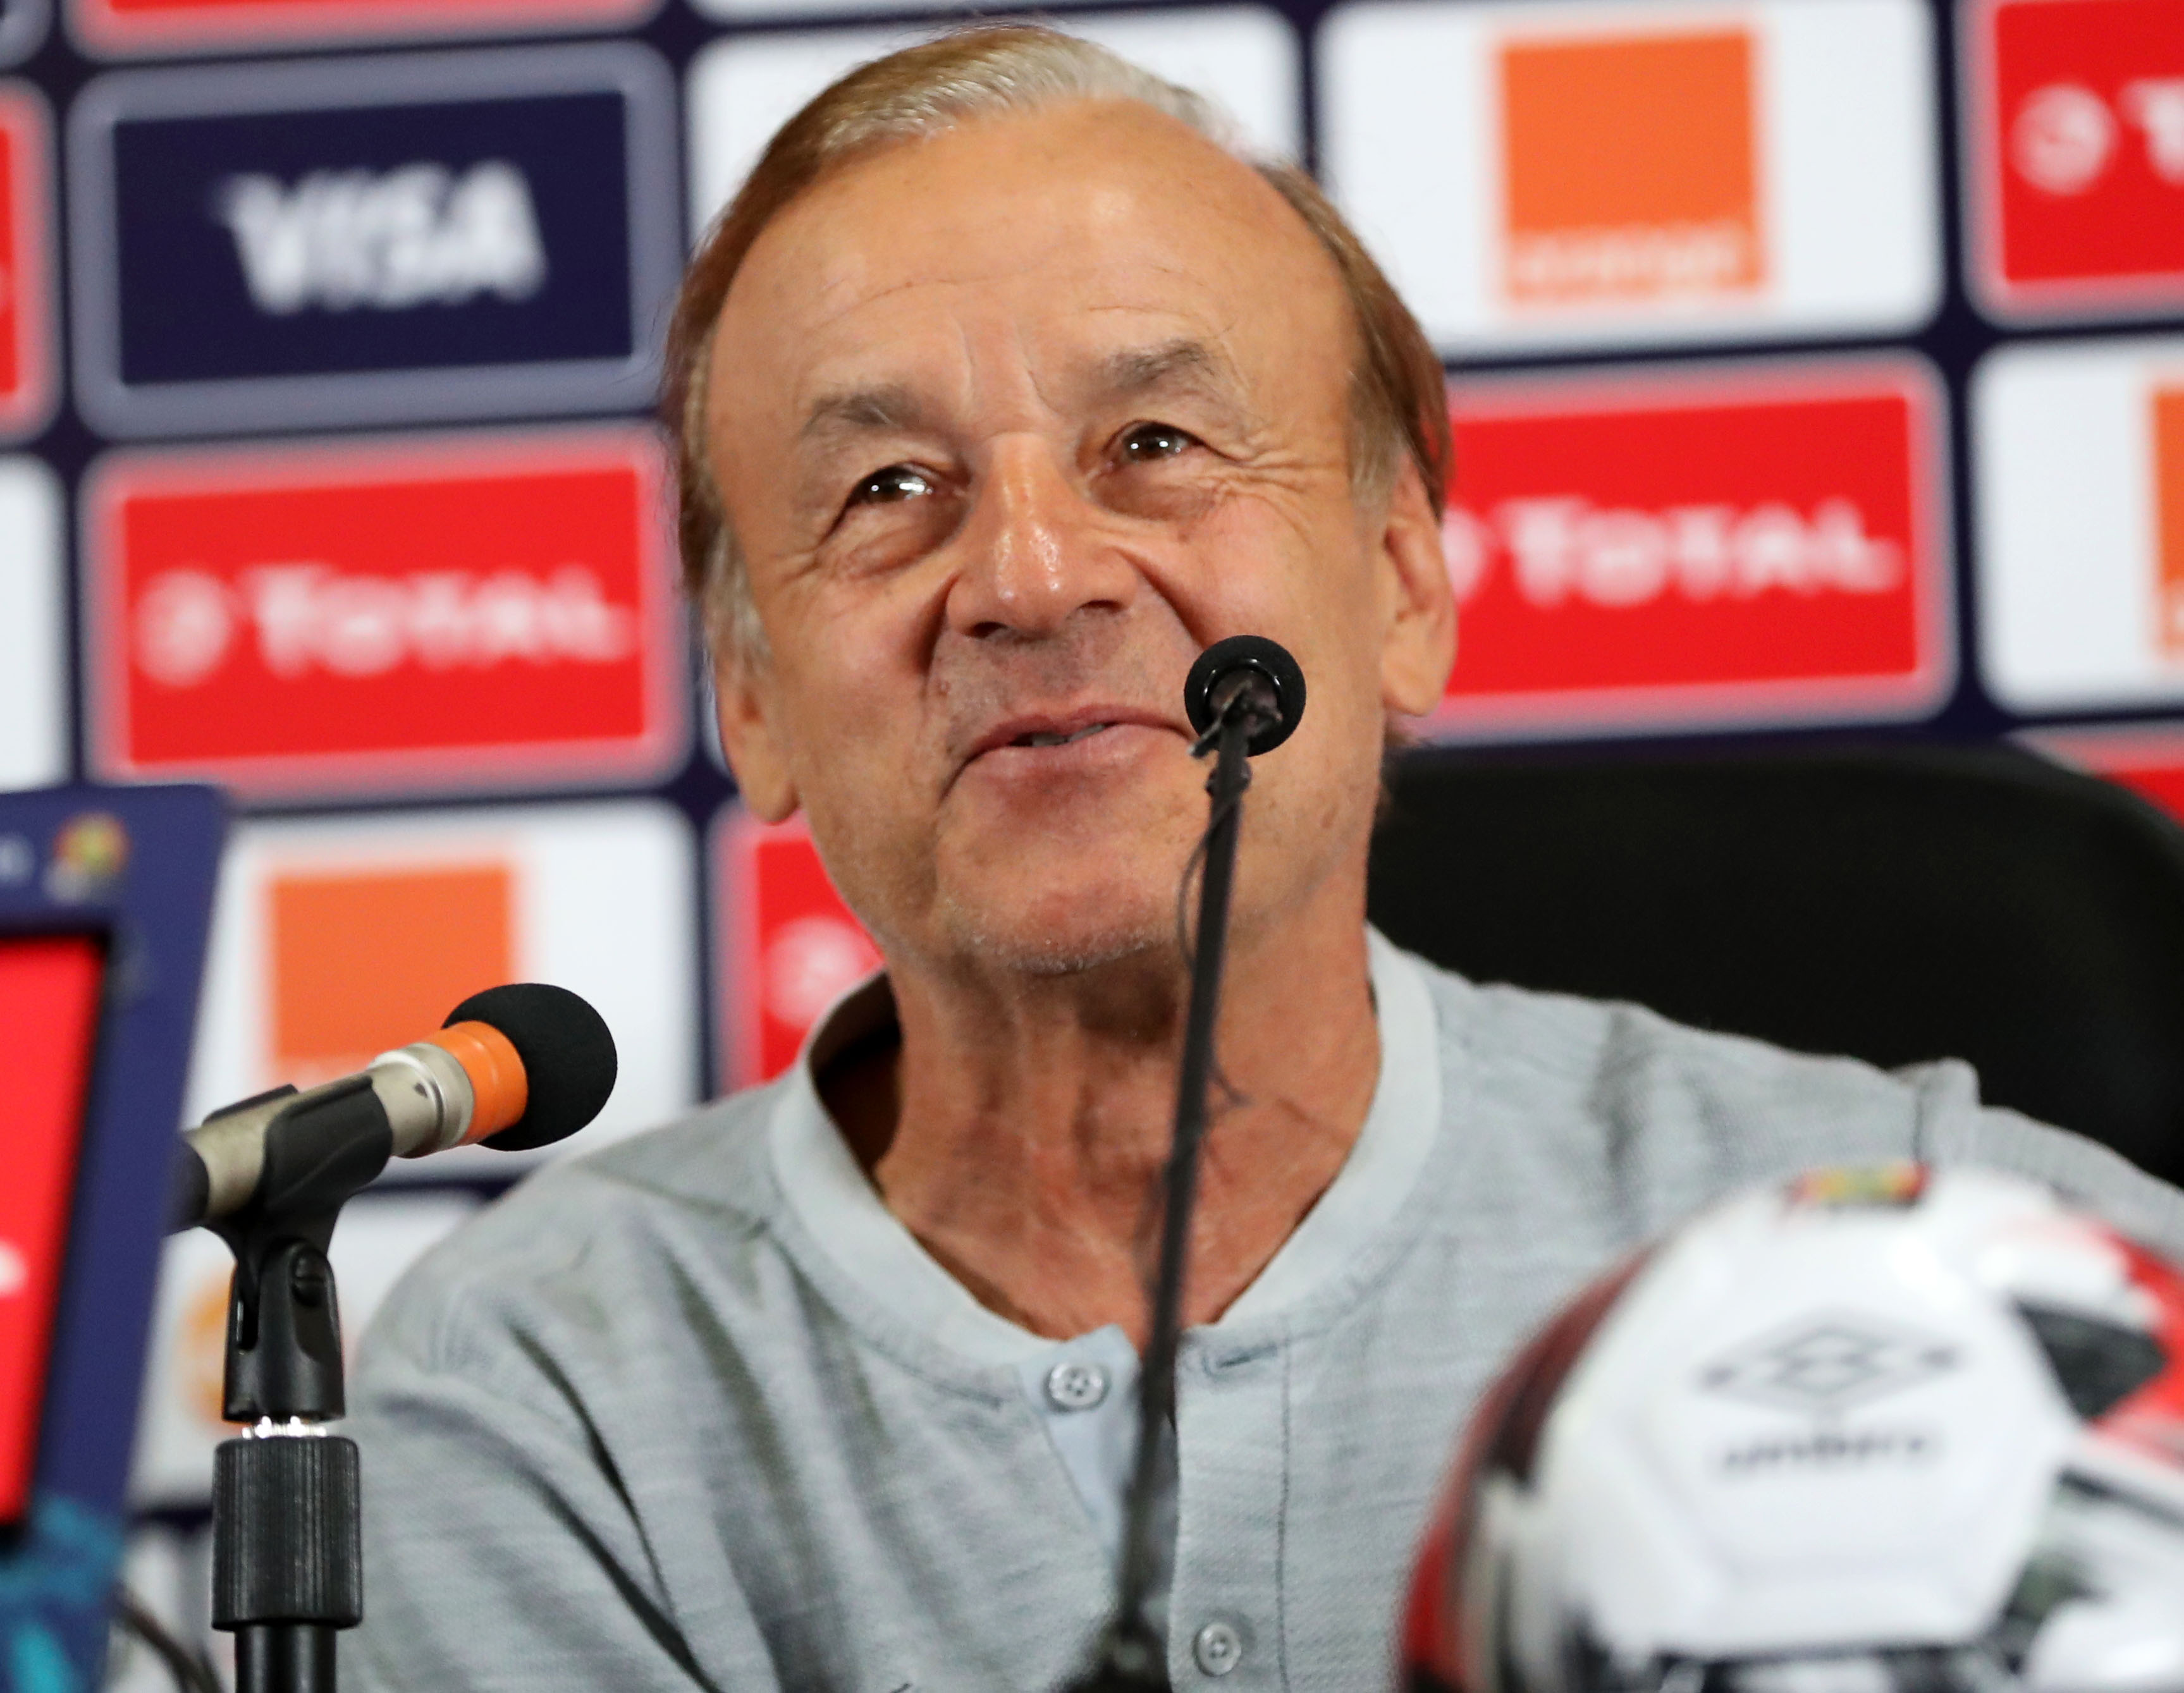 Nigeria coach Rohr satisfied with Ukraine draw